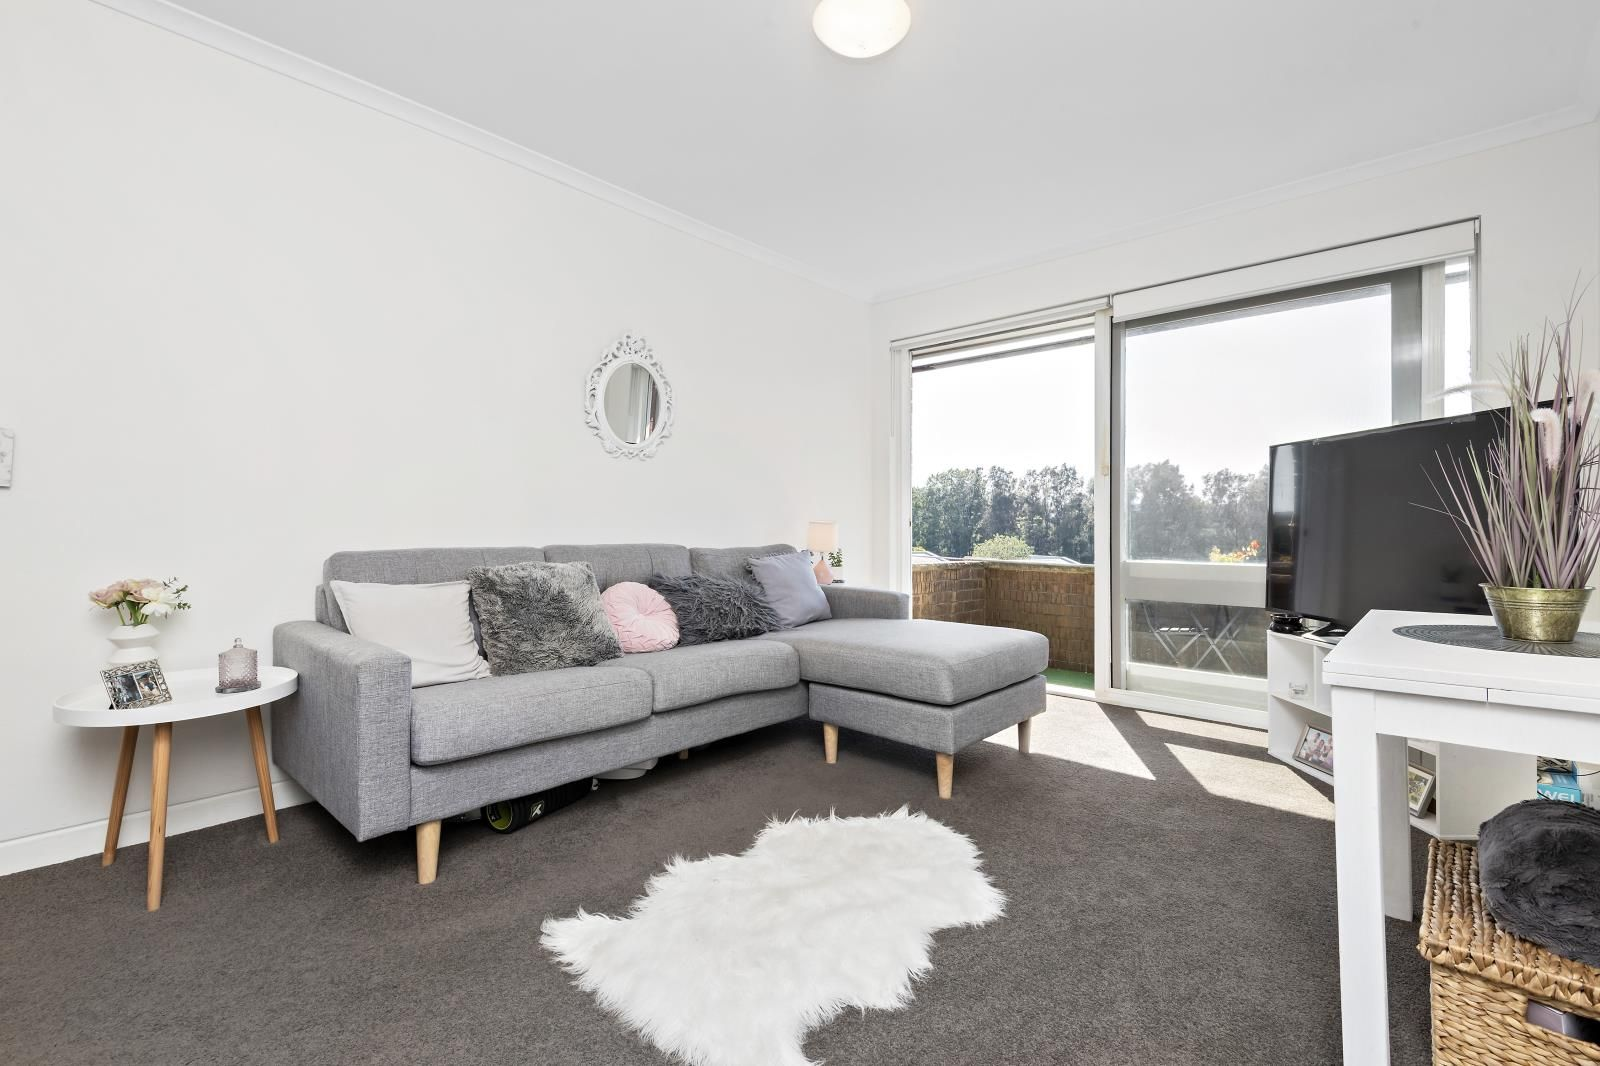 22/16 CAMPBELL PARADE, Manly Vale NSW 2093, Image 1